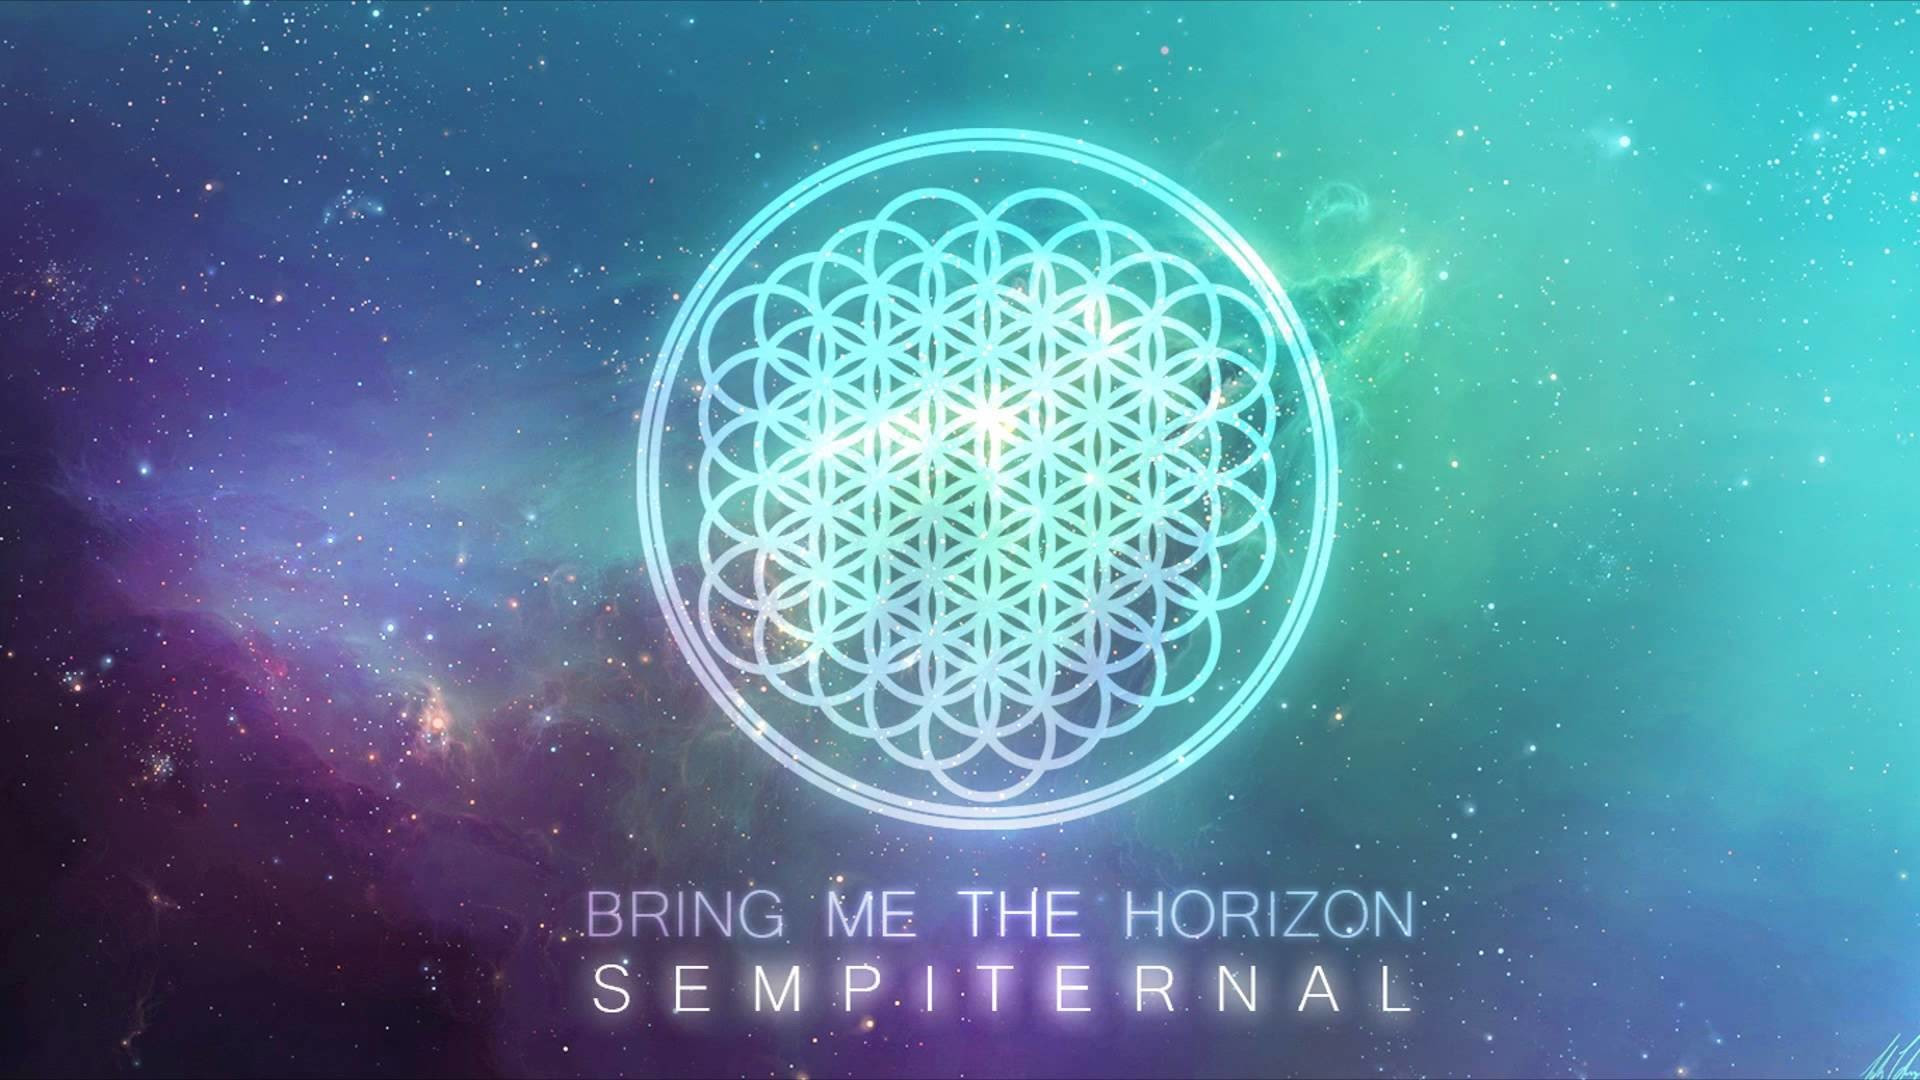 Bmth Backgrounds 71 Images